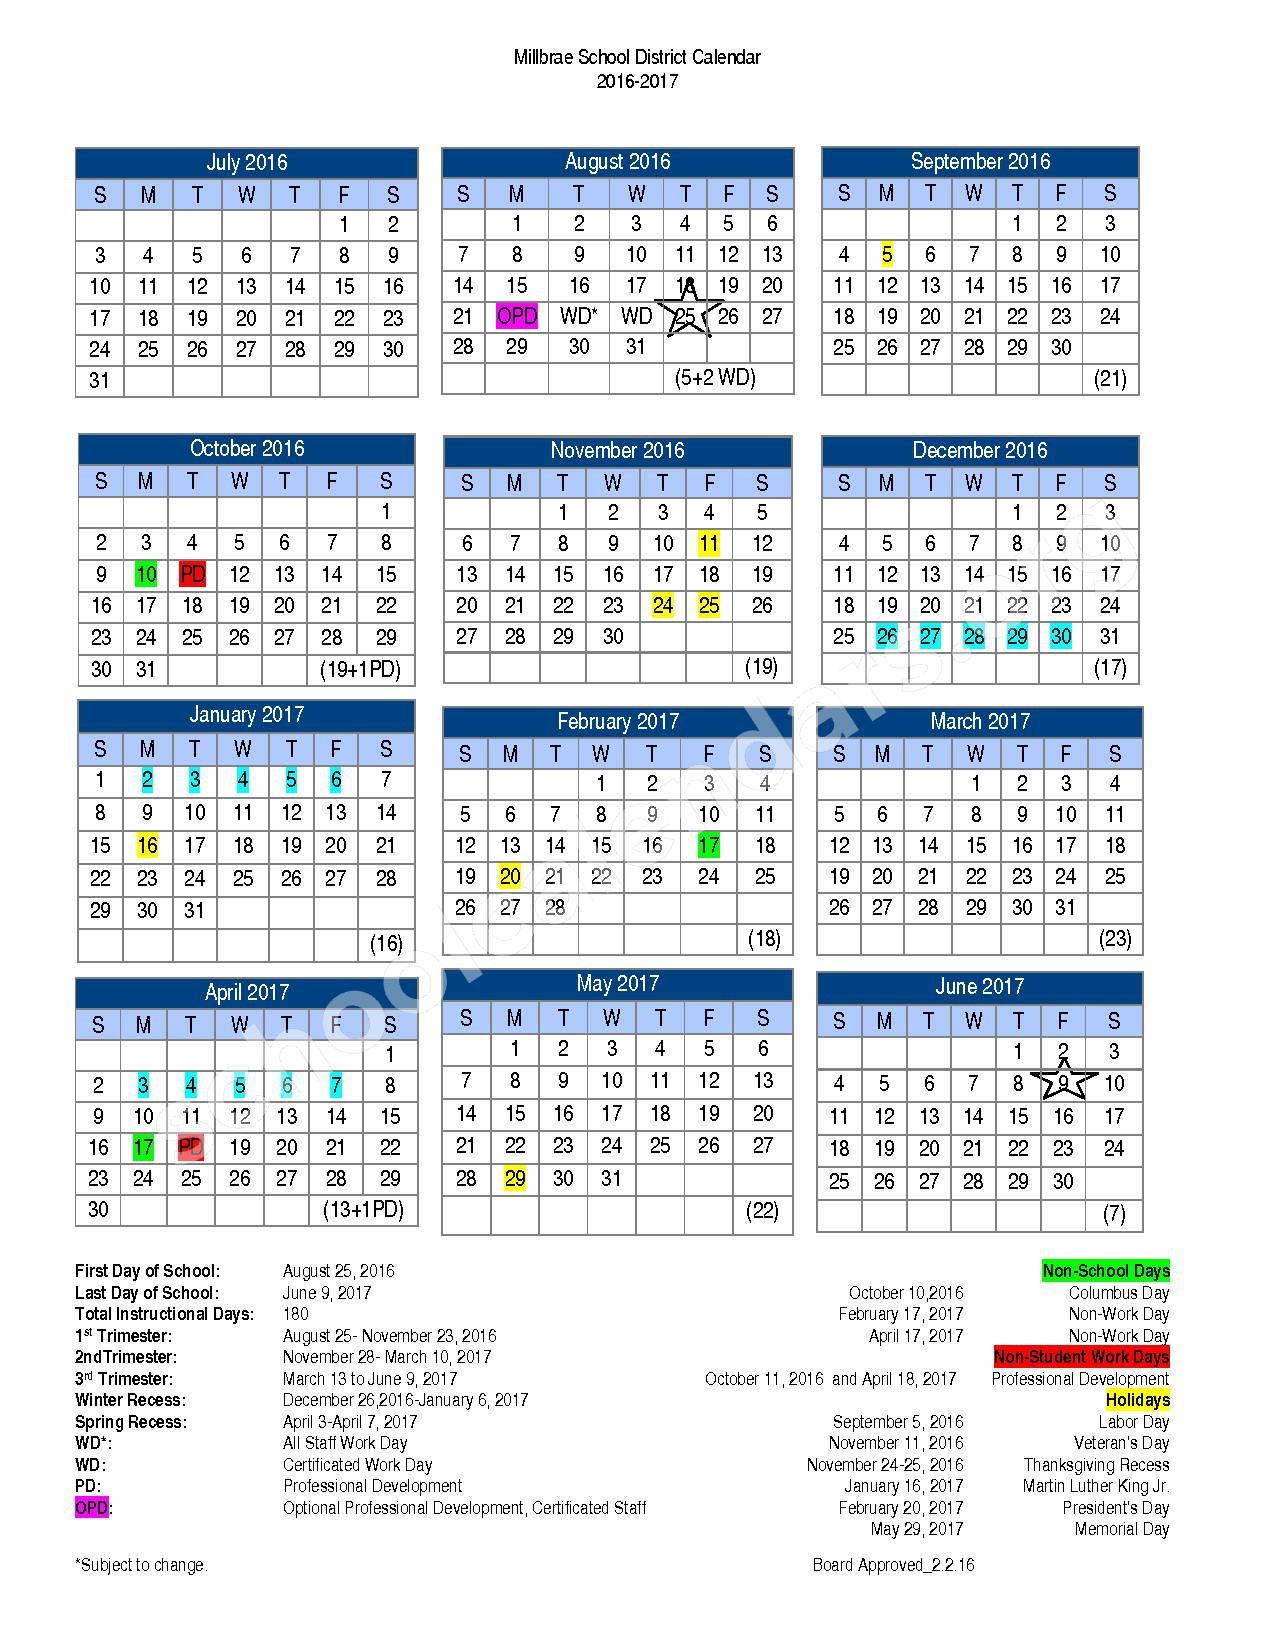 2016 - 2017 District Calendar – Millbrae School District – page 1